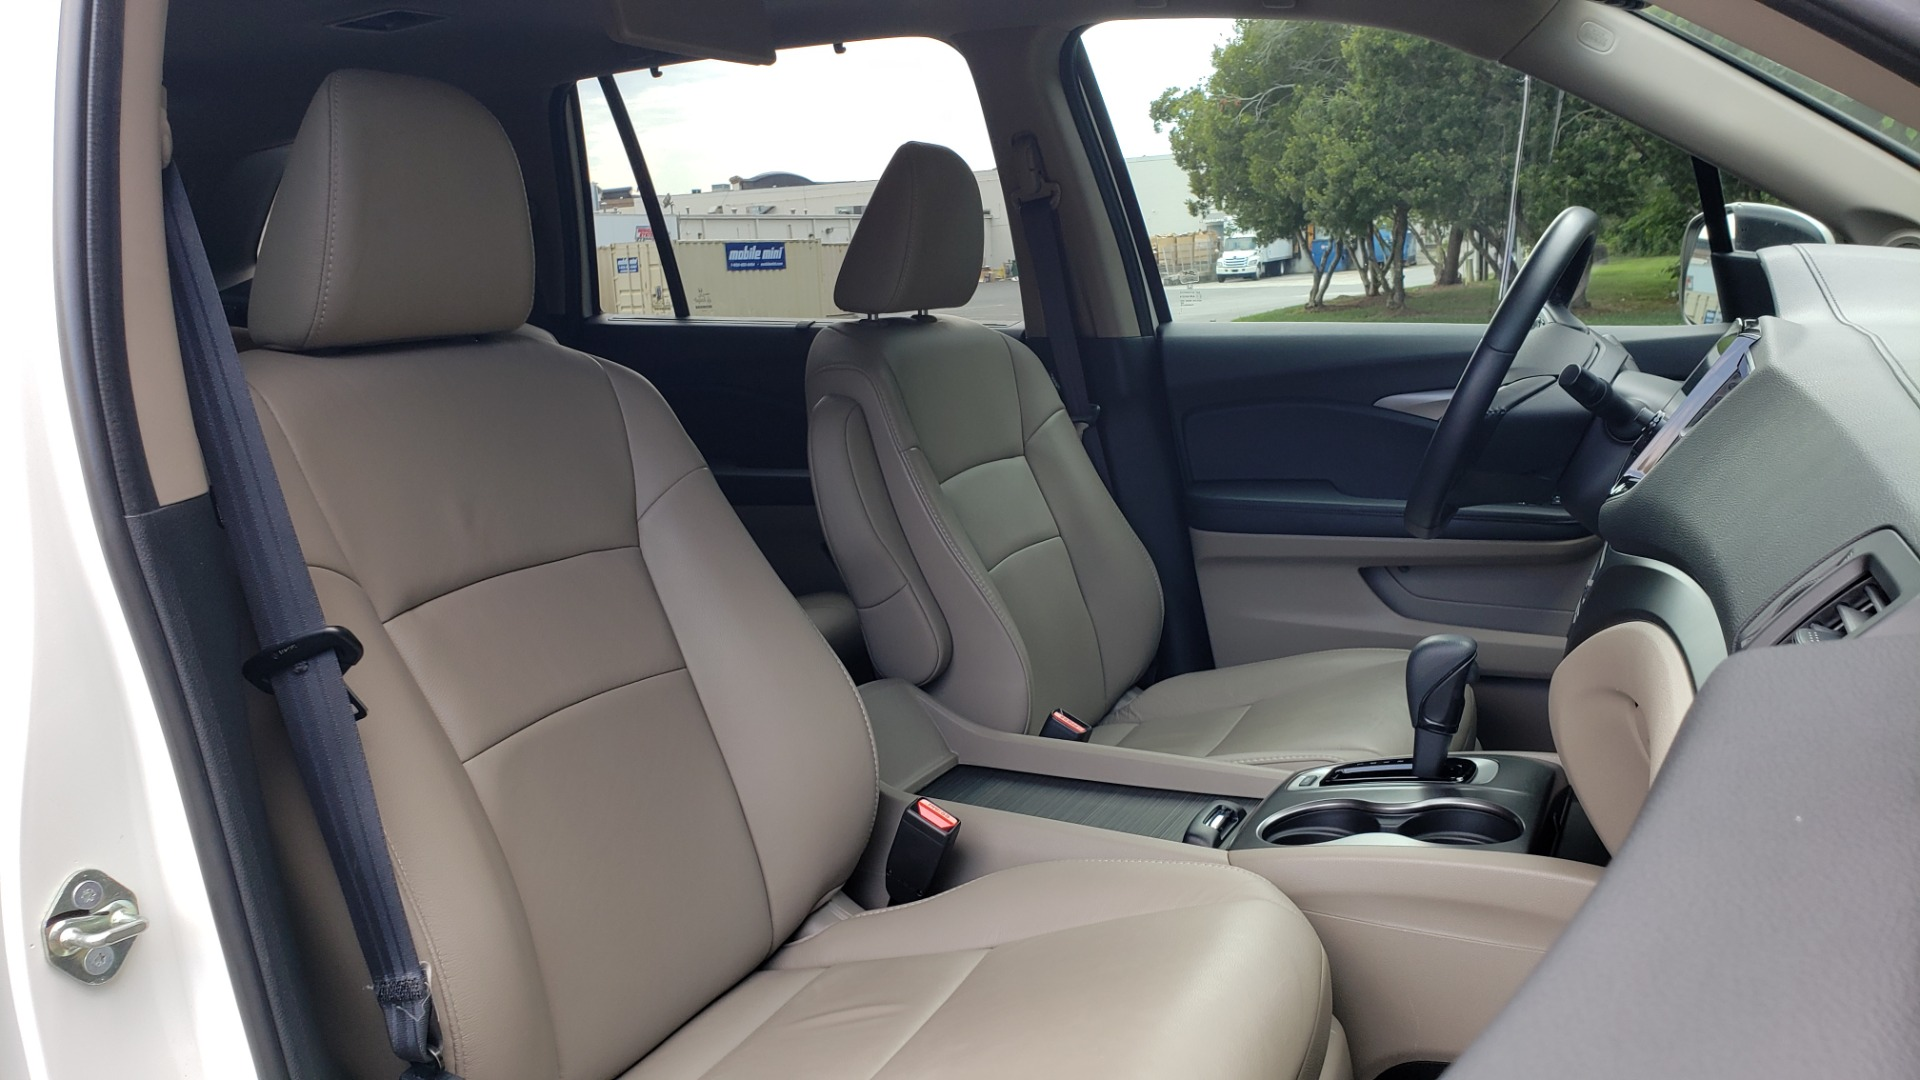 Used 2019 Honda PILOT EX-L / V6 / NAV / SUNROOF / DVD / 3-ROW / REARVIEW for sale Sold at Formula Imports in Charlotte NC 28227 73